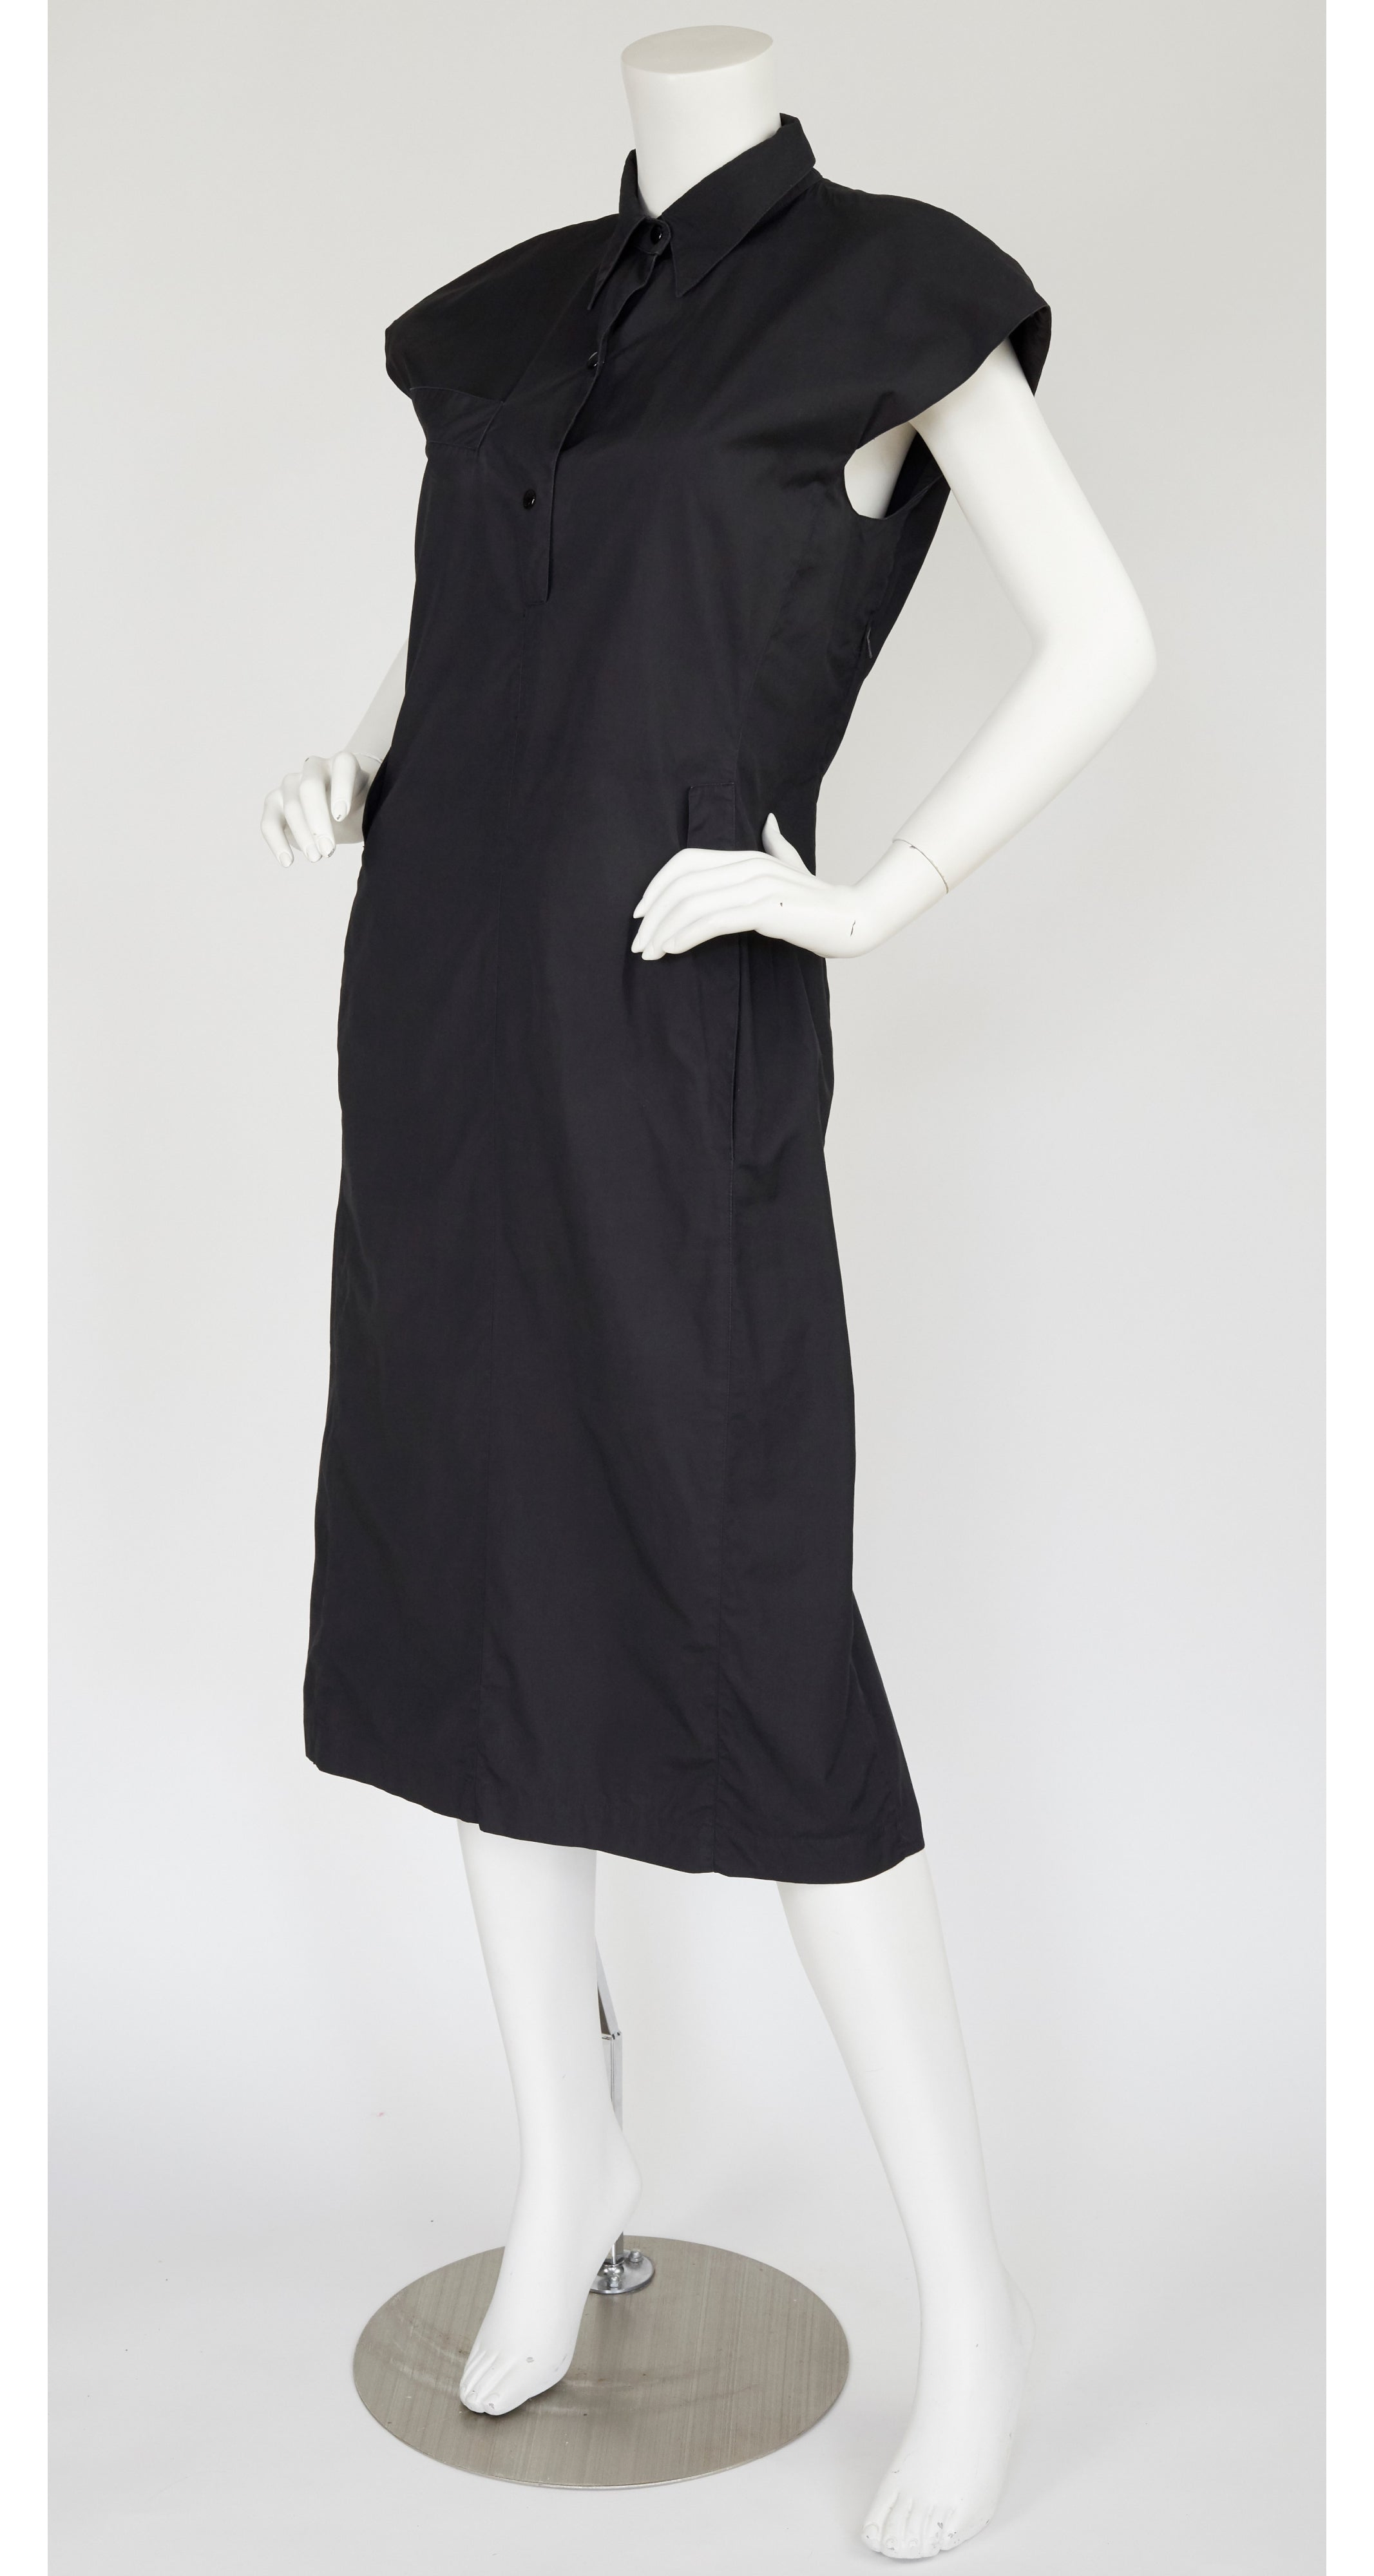 1980s Black Cotton Fishtail Dress